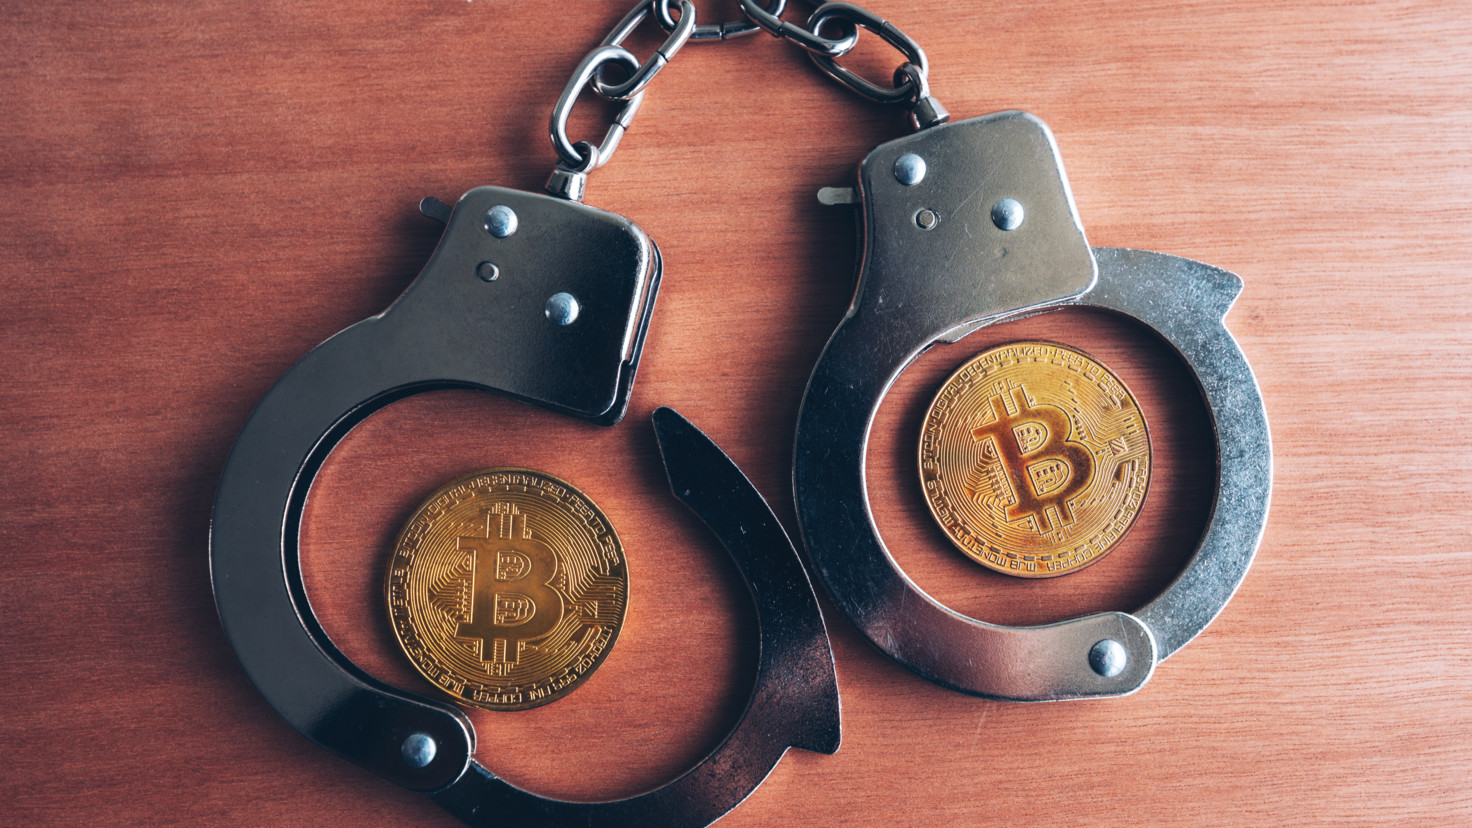 Former Texas pastor charged in 500k crypto scam